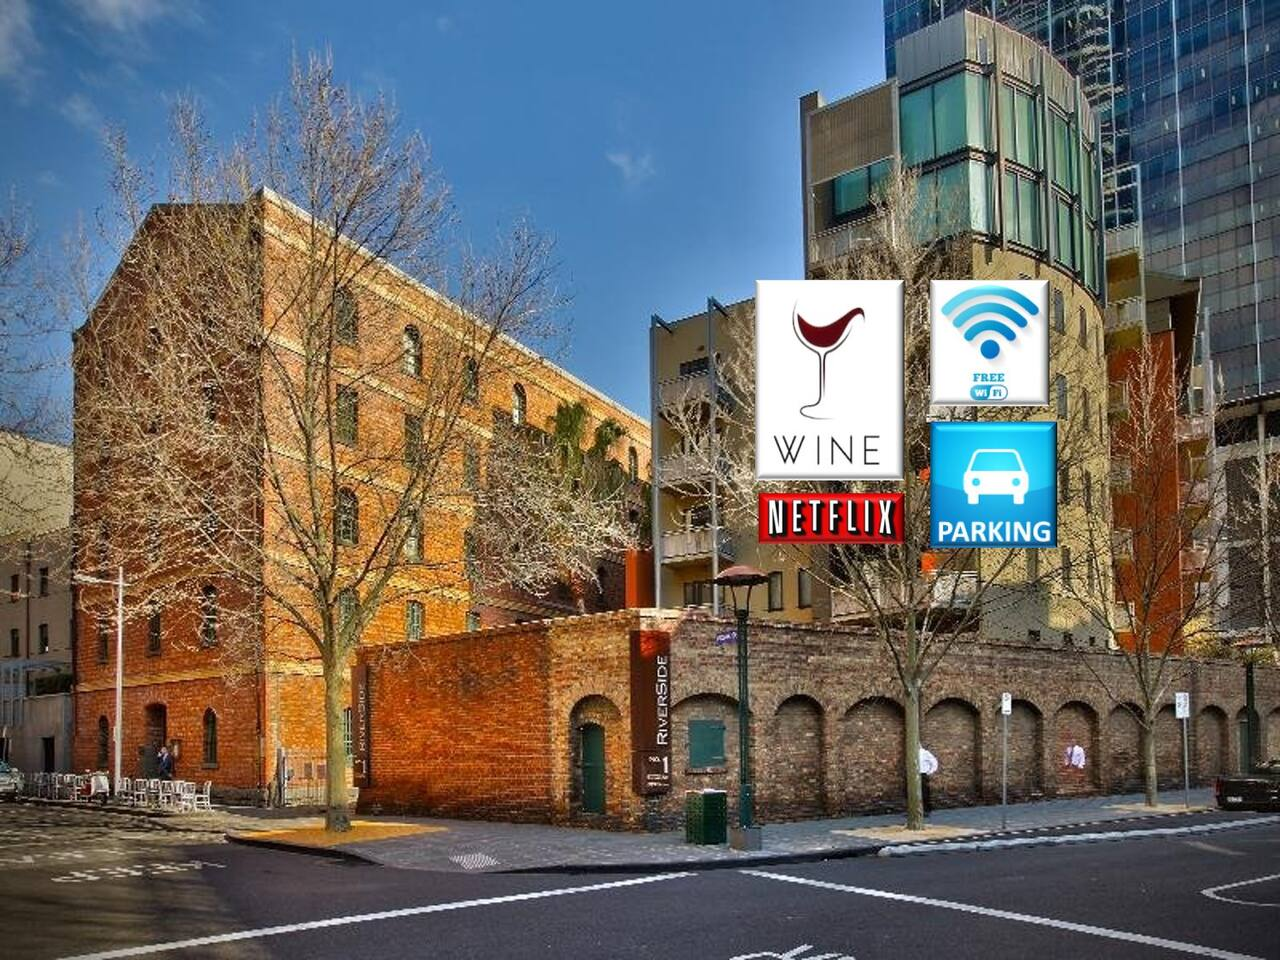 Oozing charm, history and just that wonderful touch of class. The Bond Store apartments are the ultimate place from where to base your Melbourne adventure. *Free WiFi *Secure parking *Complimentary bottle of wine  *Free Netflix